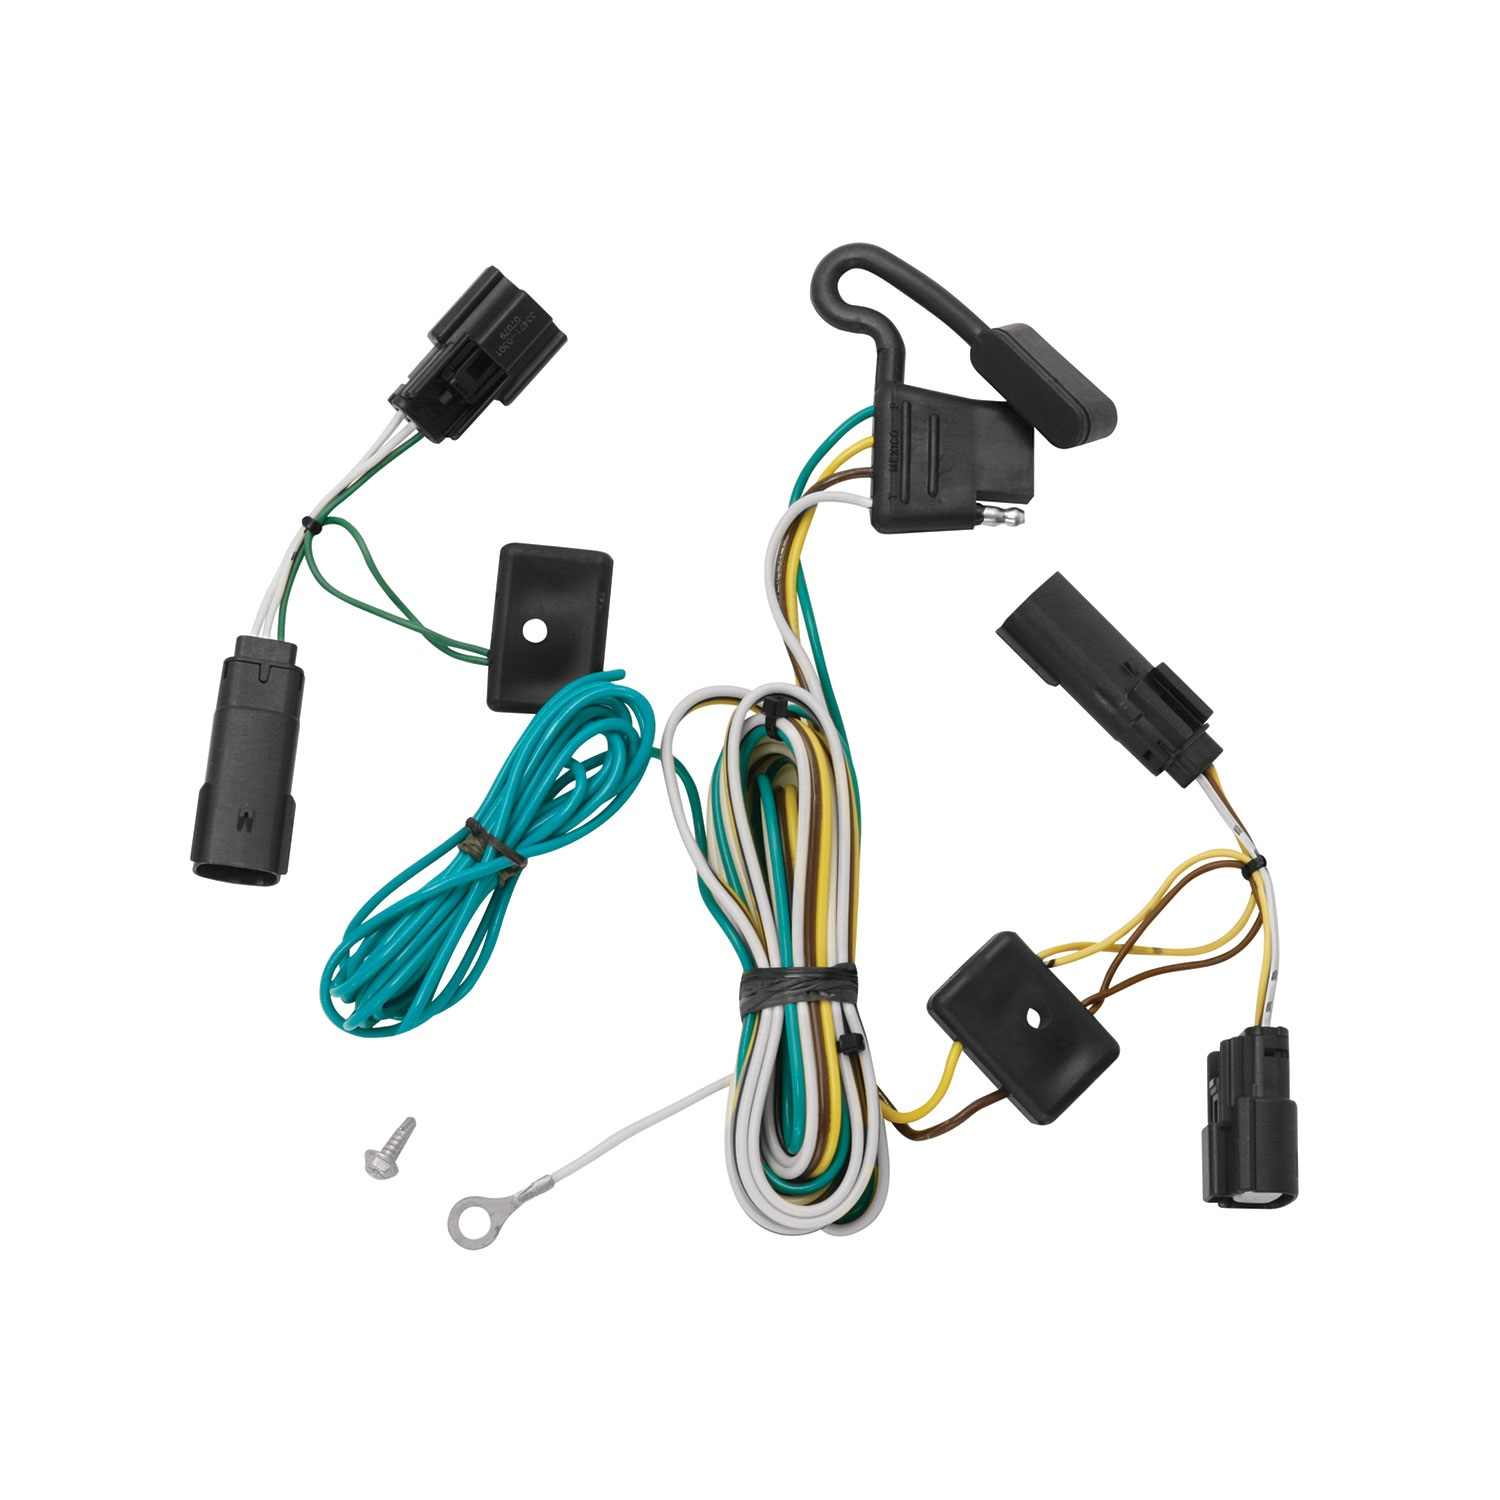 Tow Ready 118434 Wiring T-One Connector 07-09 Outlook